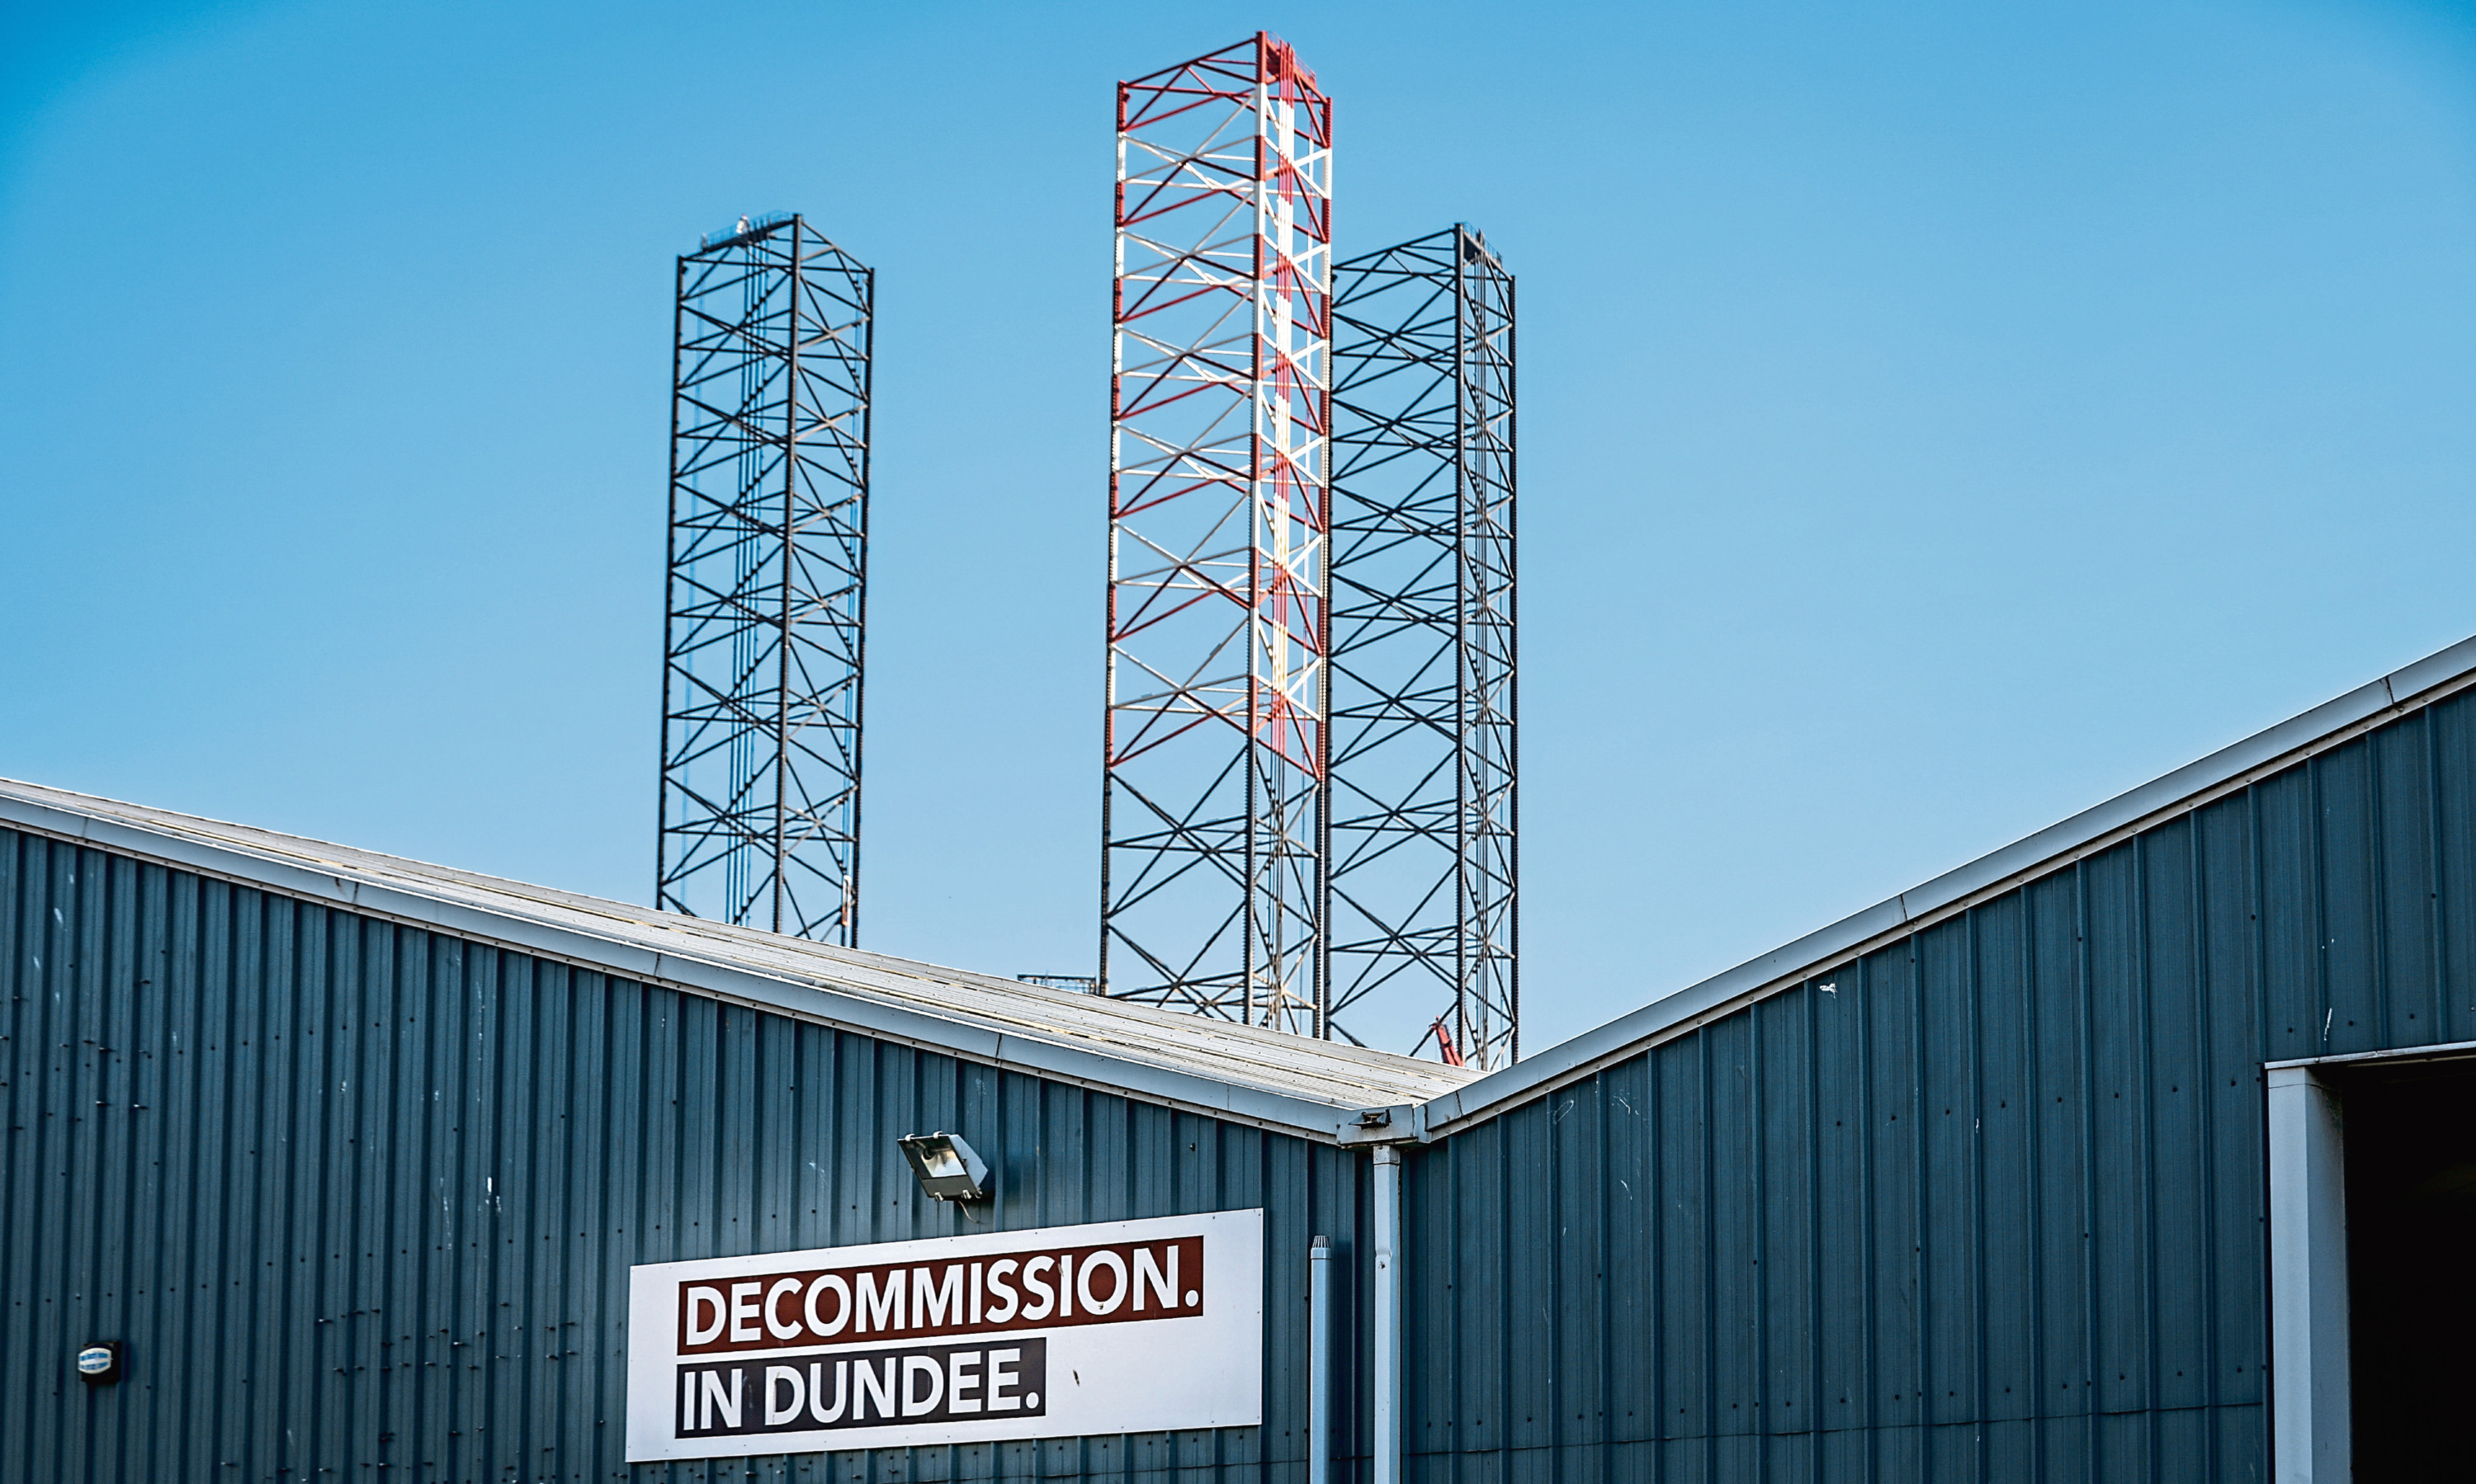 The plan to locate an ultra deep water port facility at Dales Voe in Shetland is seen as a blow to Dundees decom ambitions.